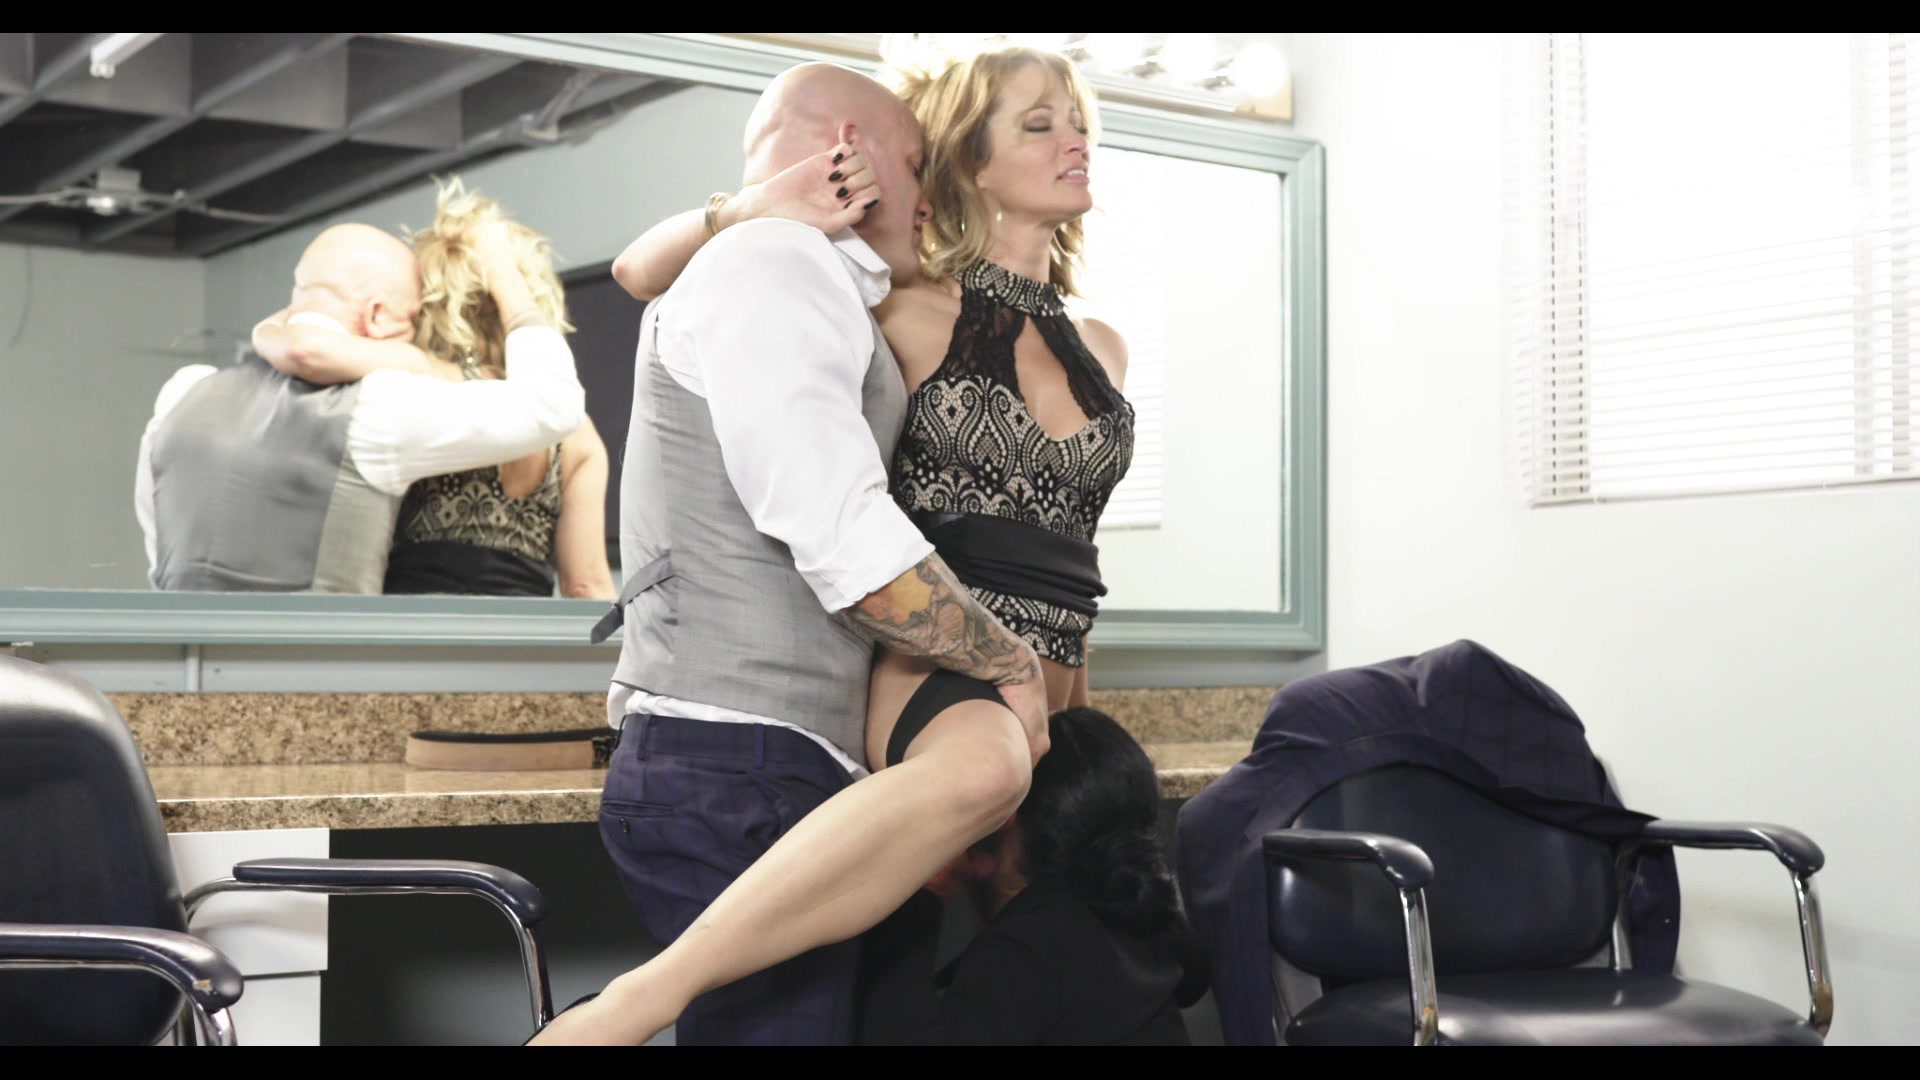 Scene with Jessica Drake, Derrick Pierce and Katrina Jade - image 14 out of 20